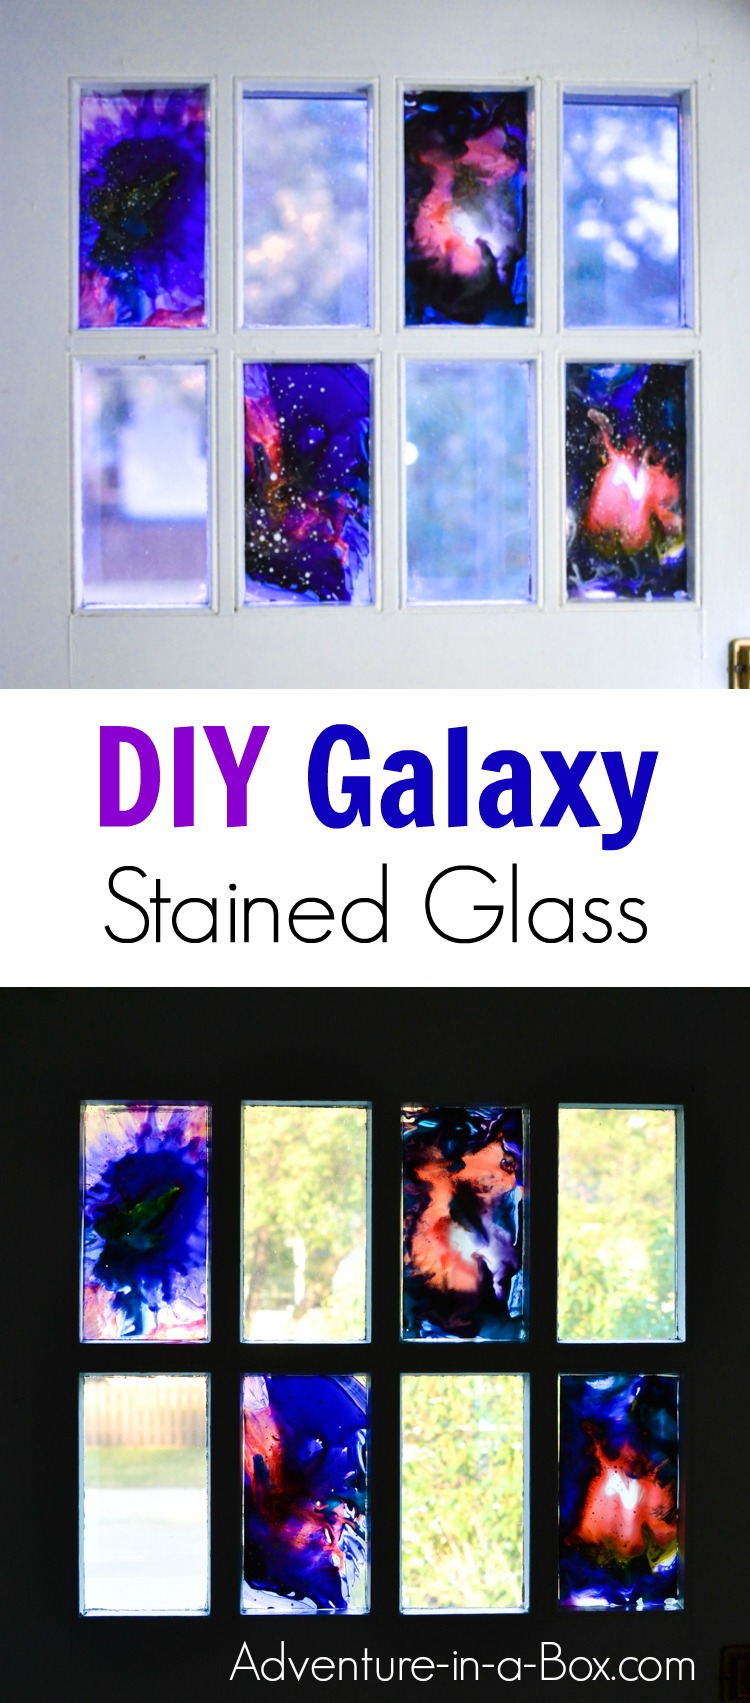 Learn how to paint space with stained glass paints in a simple way! This technique works for creating beautiful abstract wall art anddecorating craft projects.